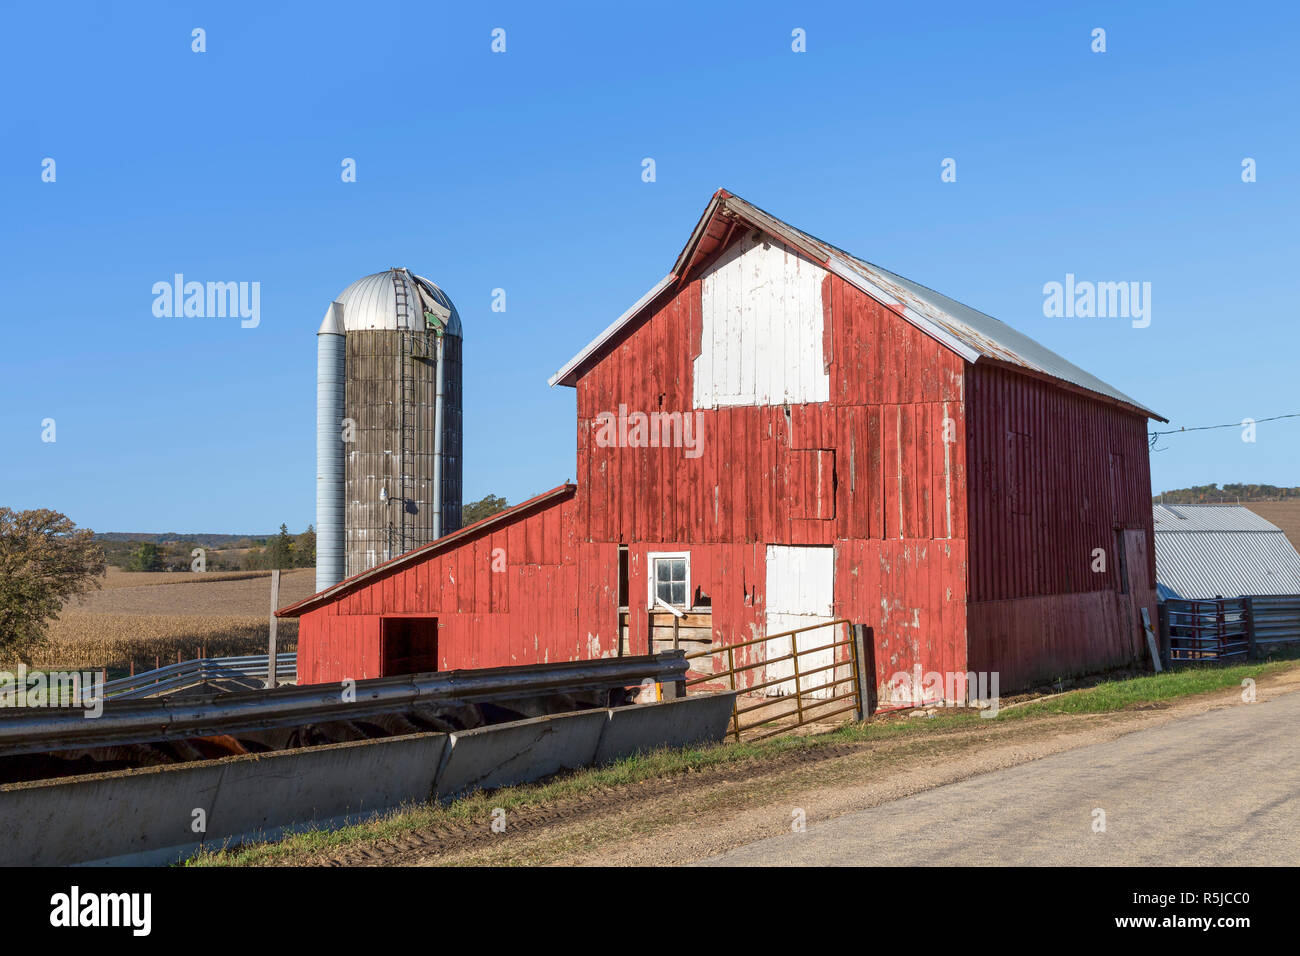 An old bright red barn and silo stand along the roadside on a rural Illinois farm. - Stock Image